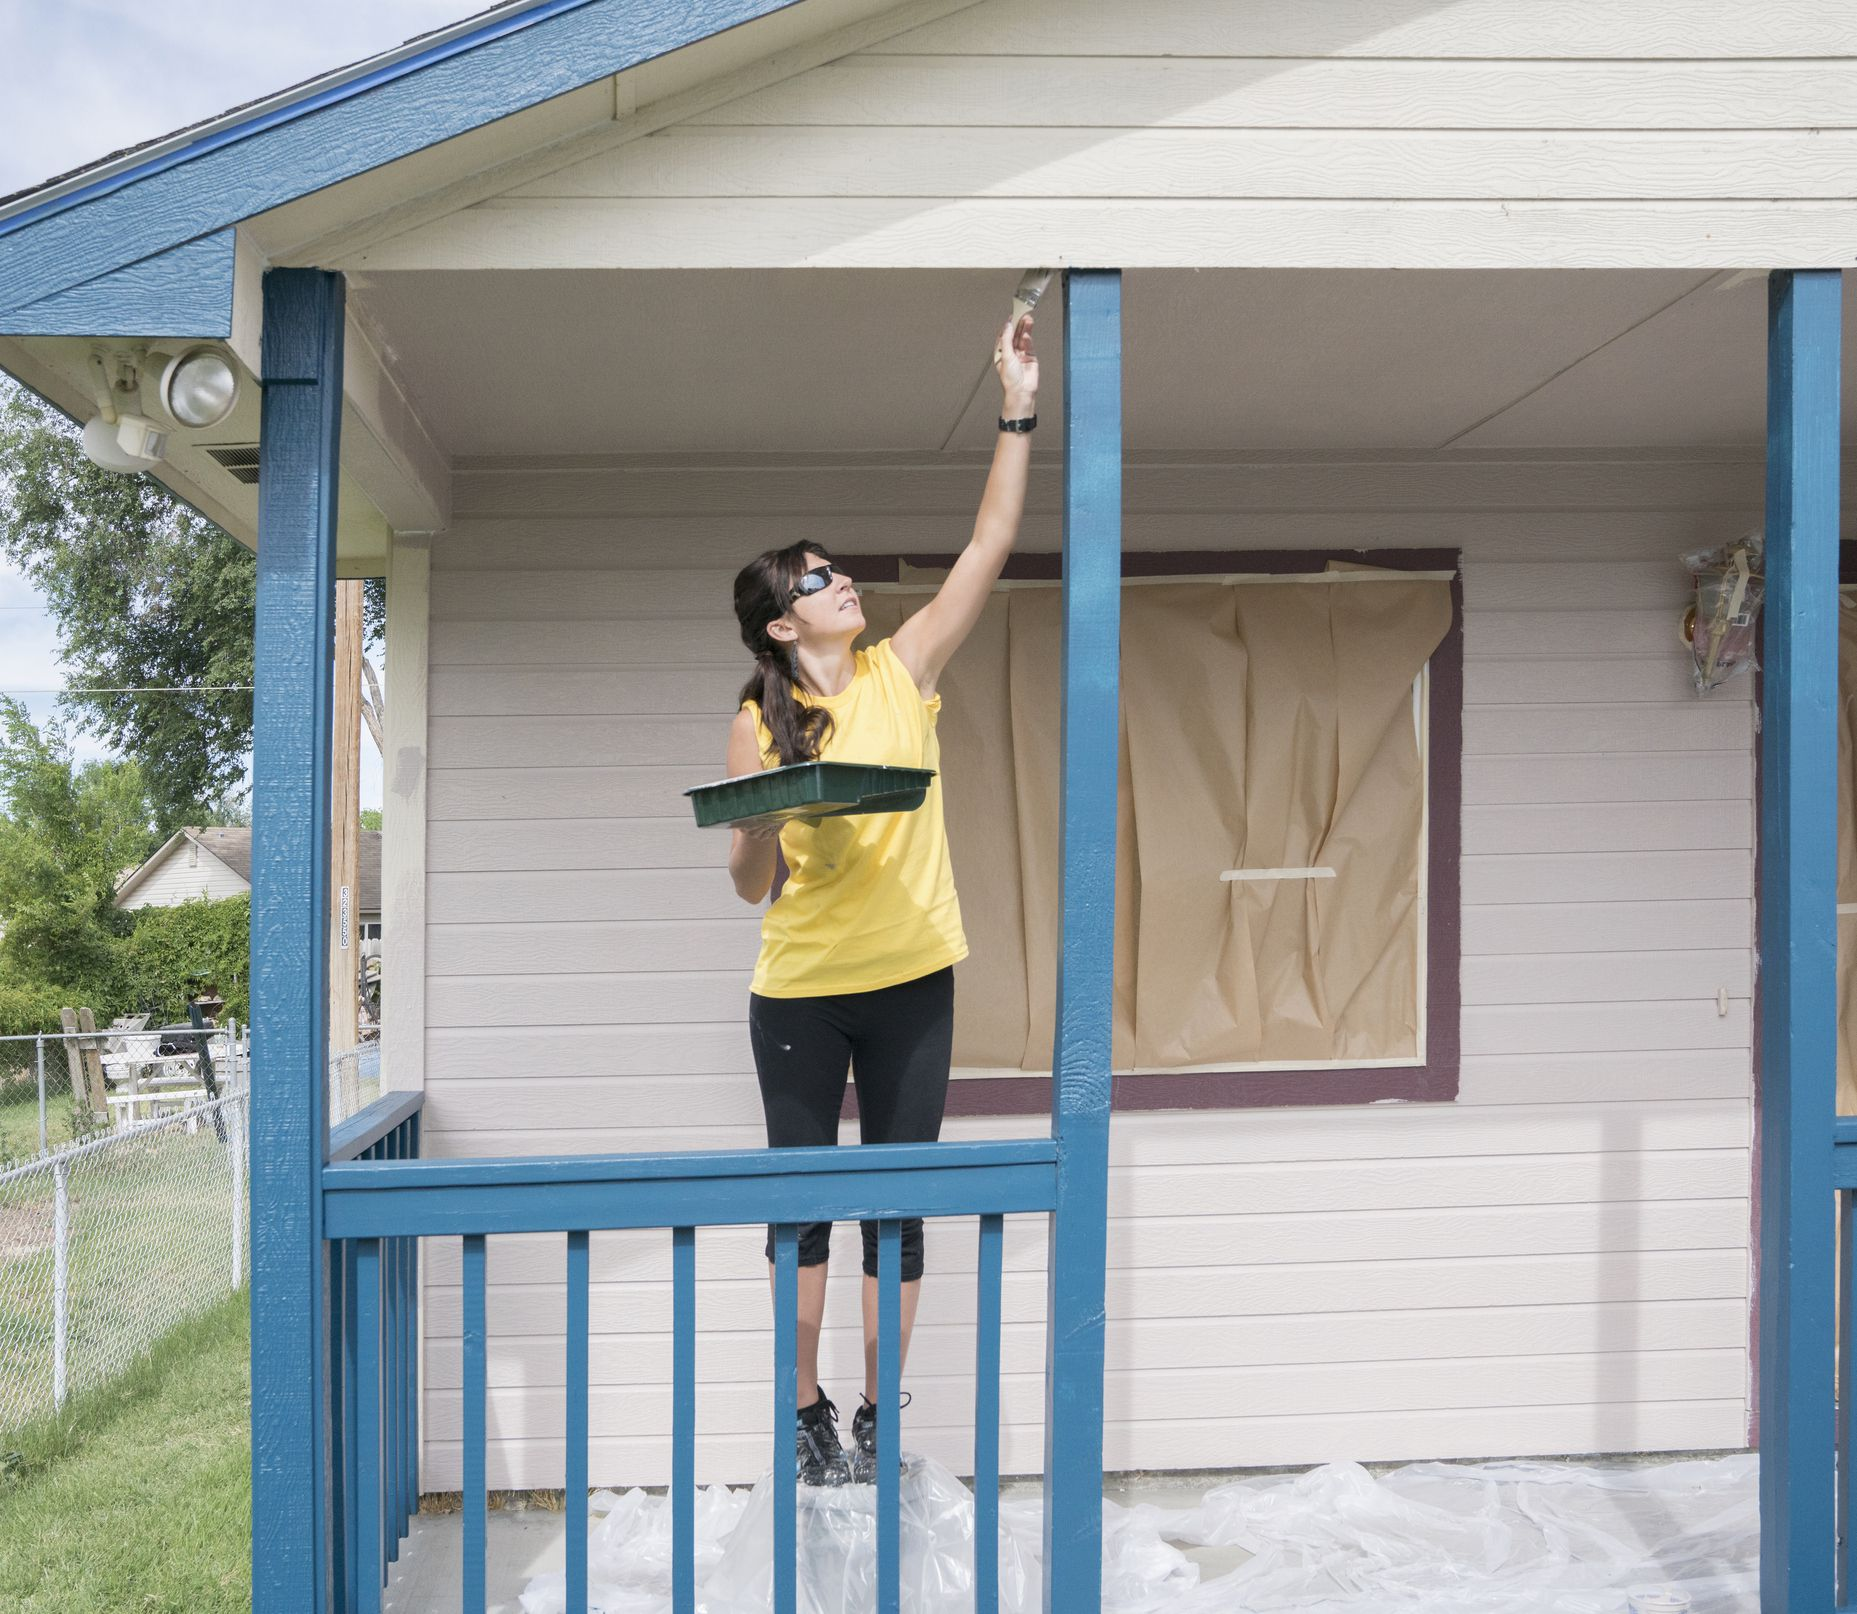 Exterior Home Painting: 10 Tips For Painting Your House Exterior